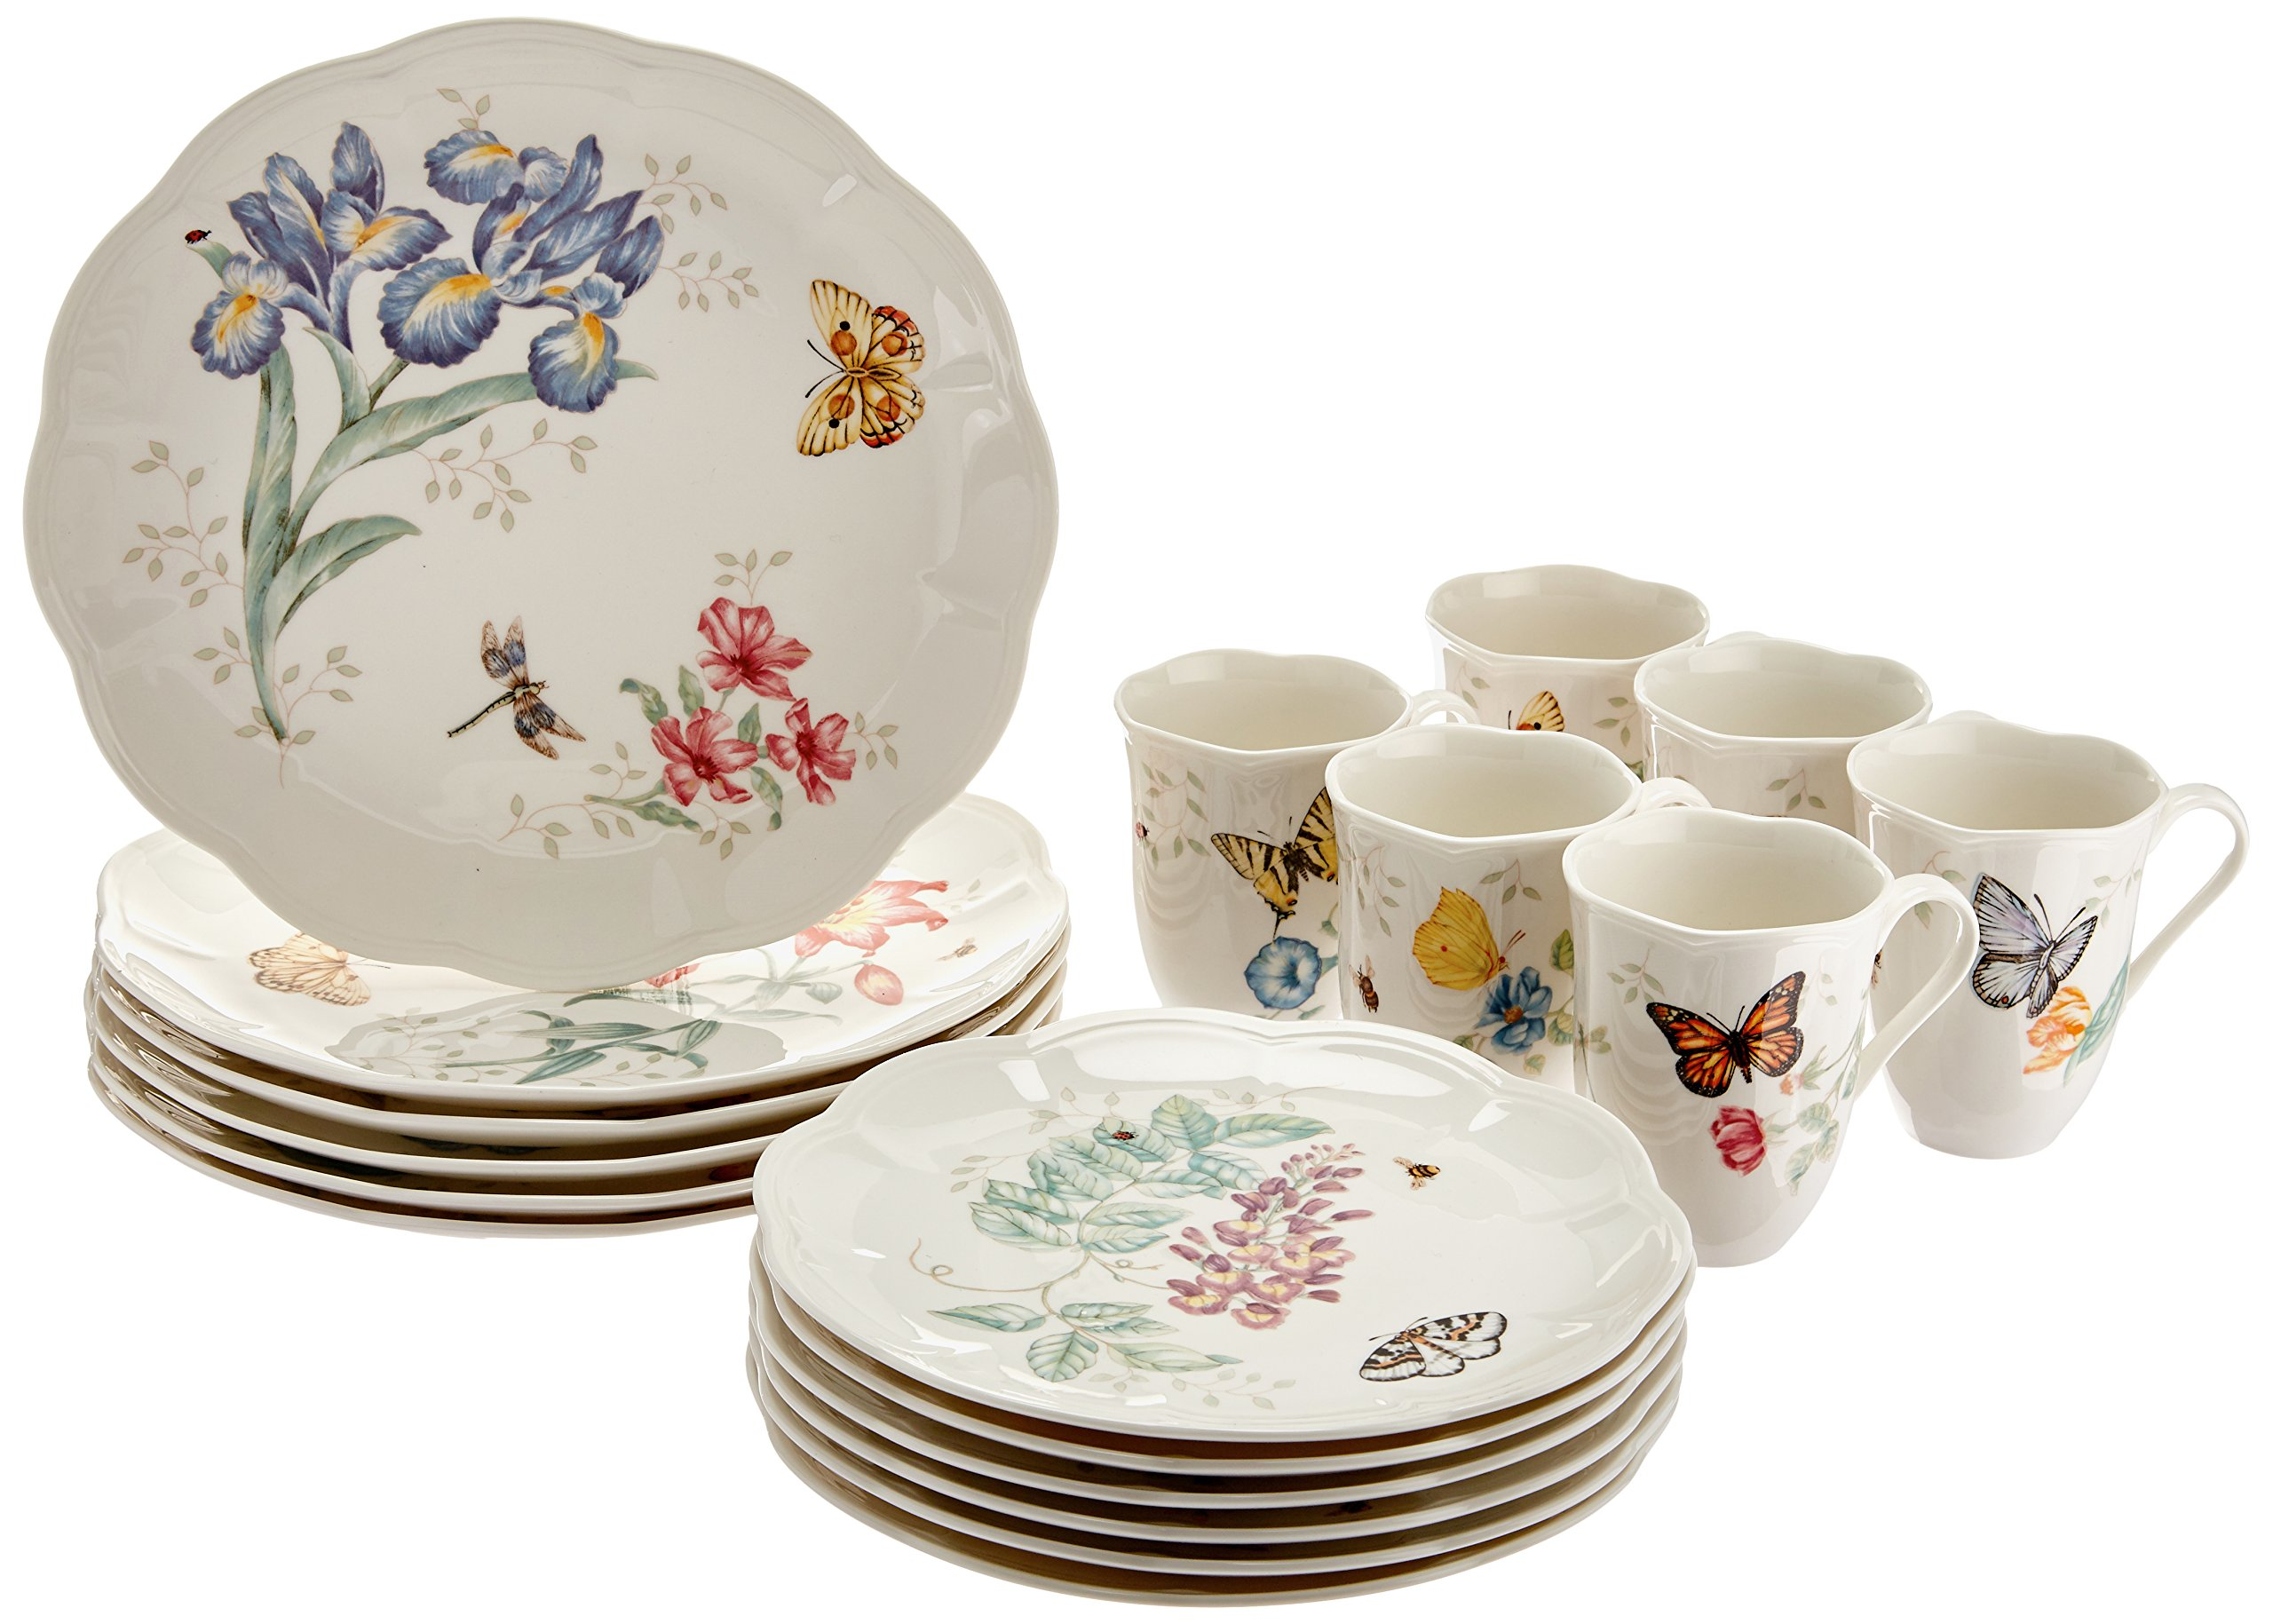 Lenox Butterfly Meadow 18-Piece Dinnerware Set Service for 6  sc 1 st  Amazon.com & Best Rated in Dinnerware Sets \u0026 Helpful Customer Reviews - Amazon.com